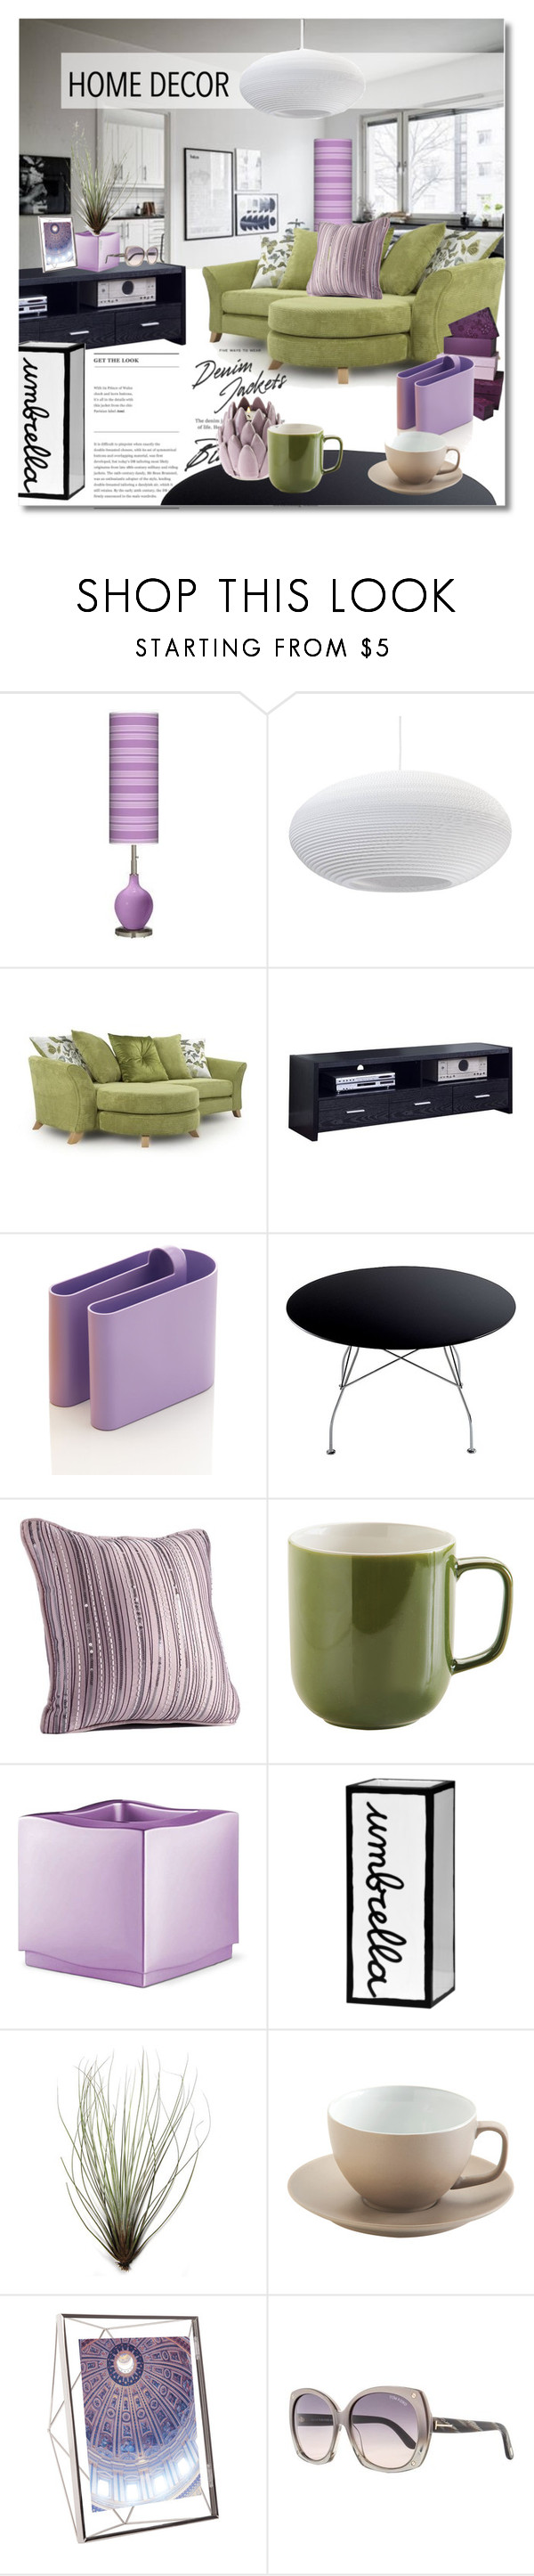 """Essential pieces"" by undici ❤ liked on Polyvore featuring interior, interiors, interior design, home, home decor, interior decorating, Graypants, Coaster, B-Line and Kartell"